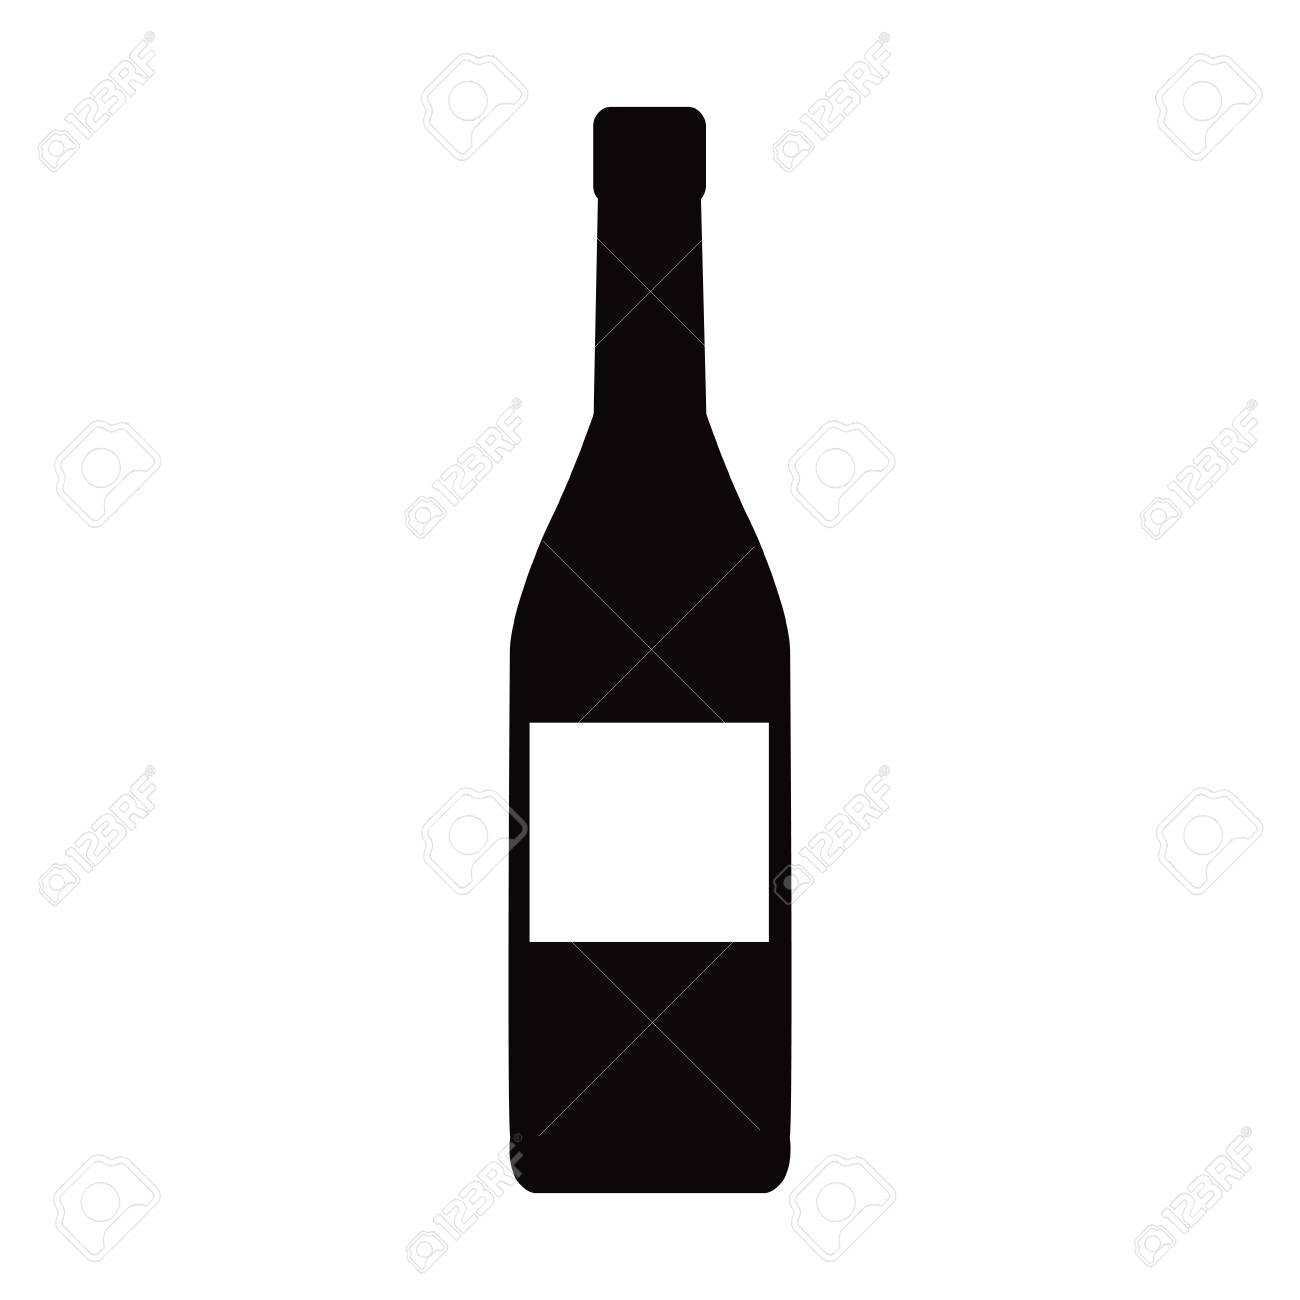 Download High Quality Alcohol Black Transparent PNG Images.